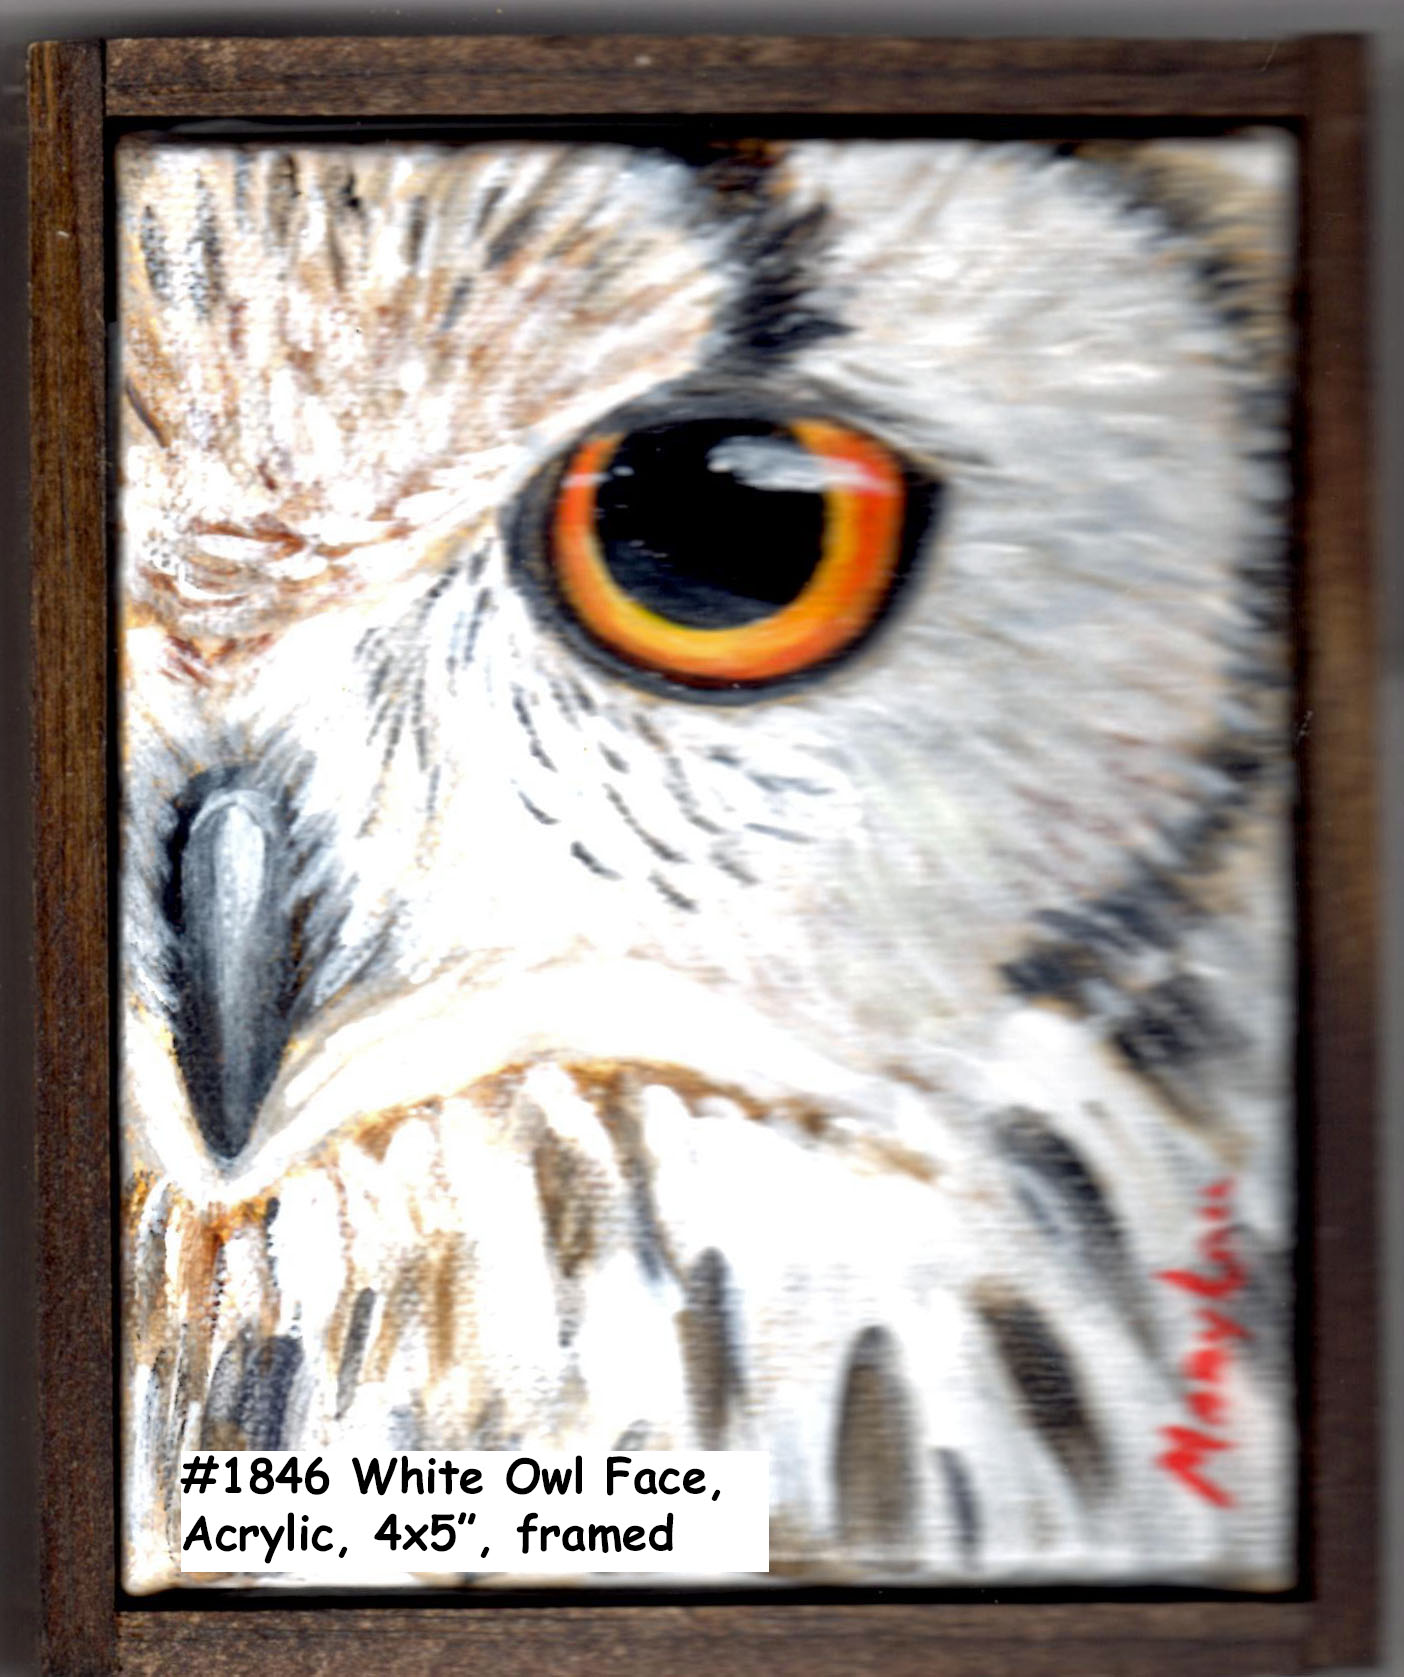 18-46 WhiteOwl-Eye-4x5in frame